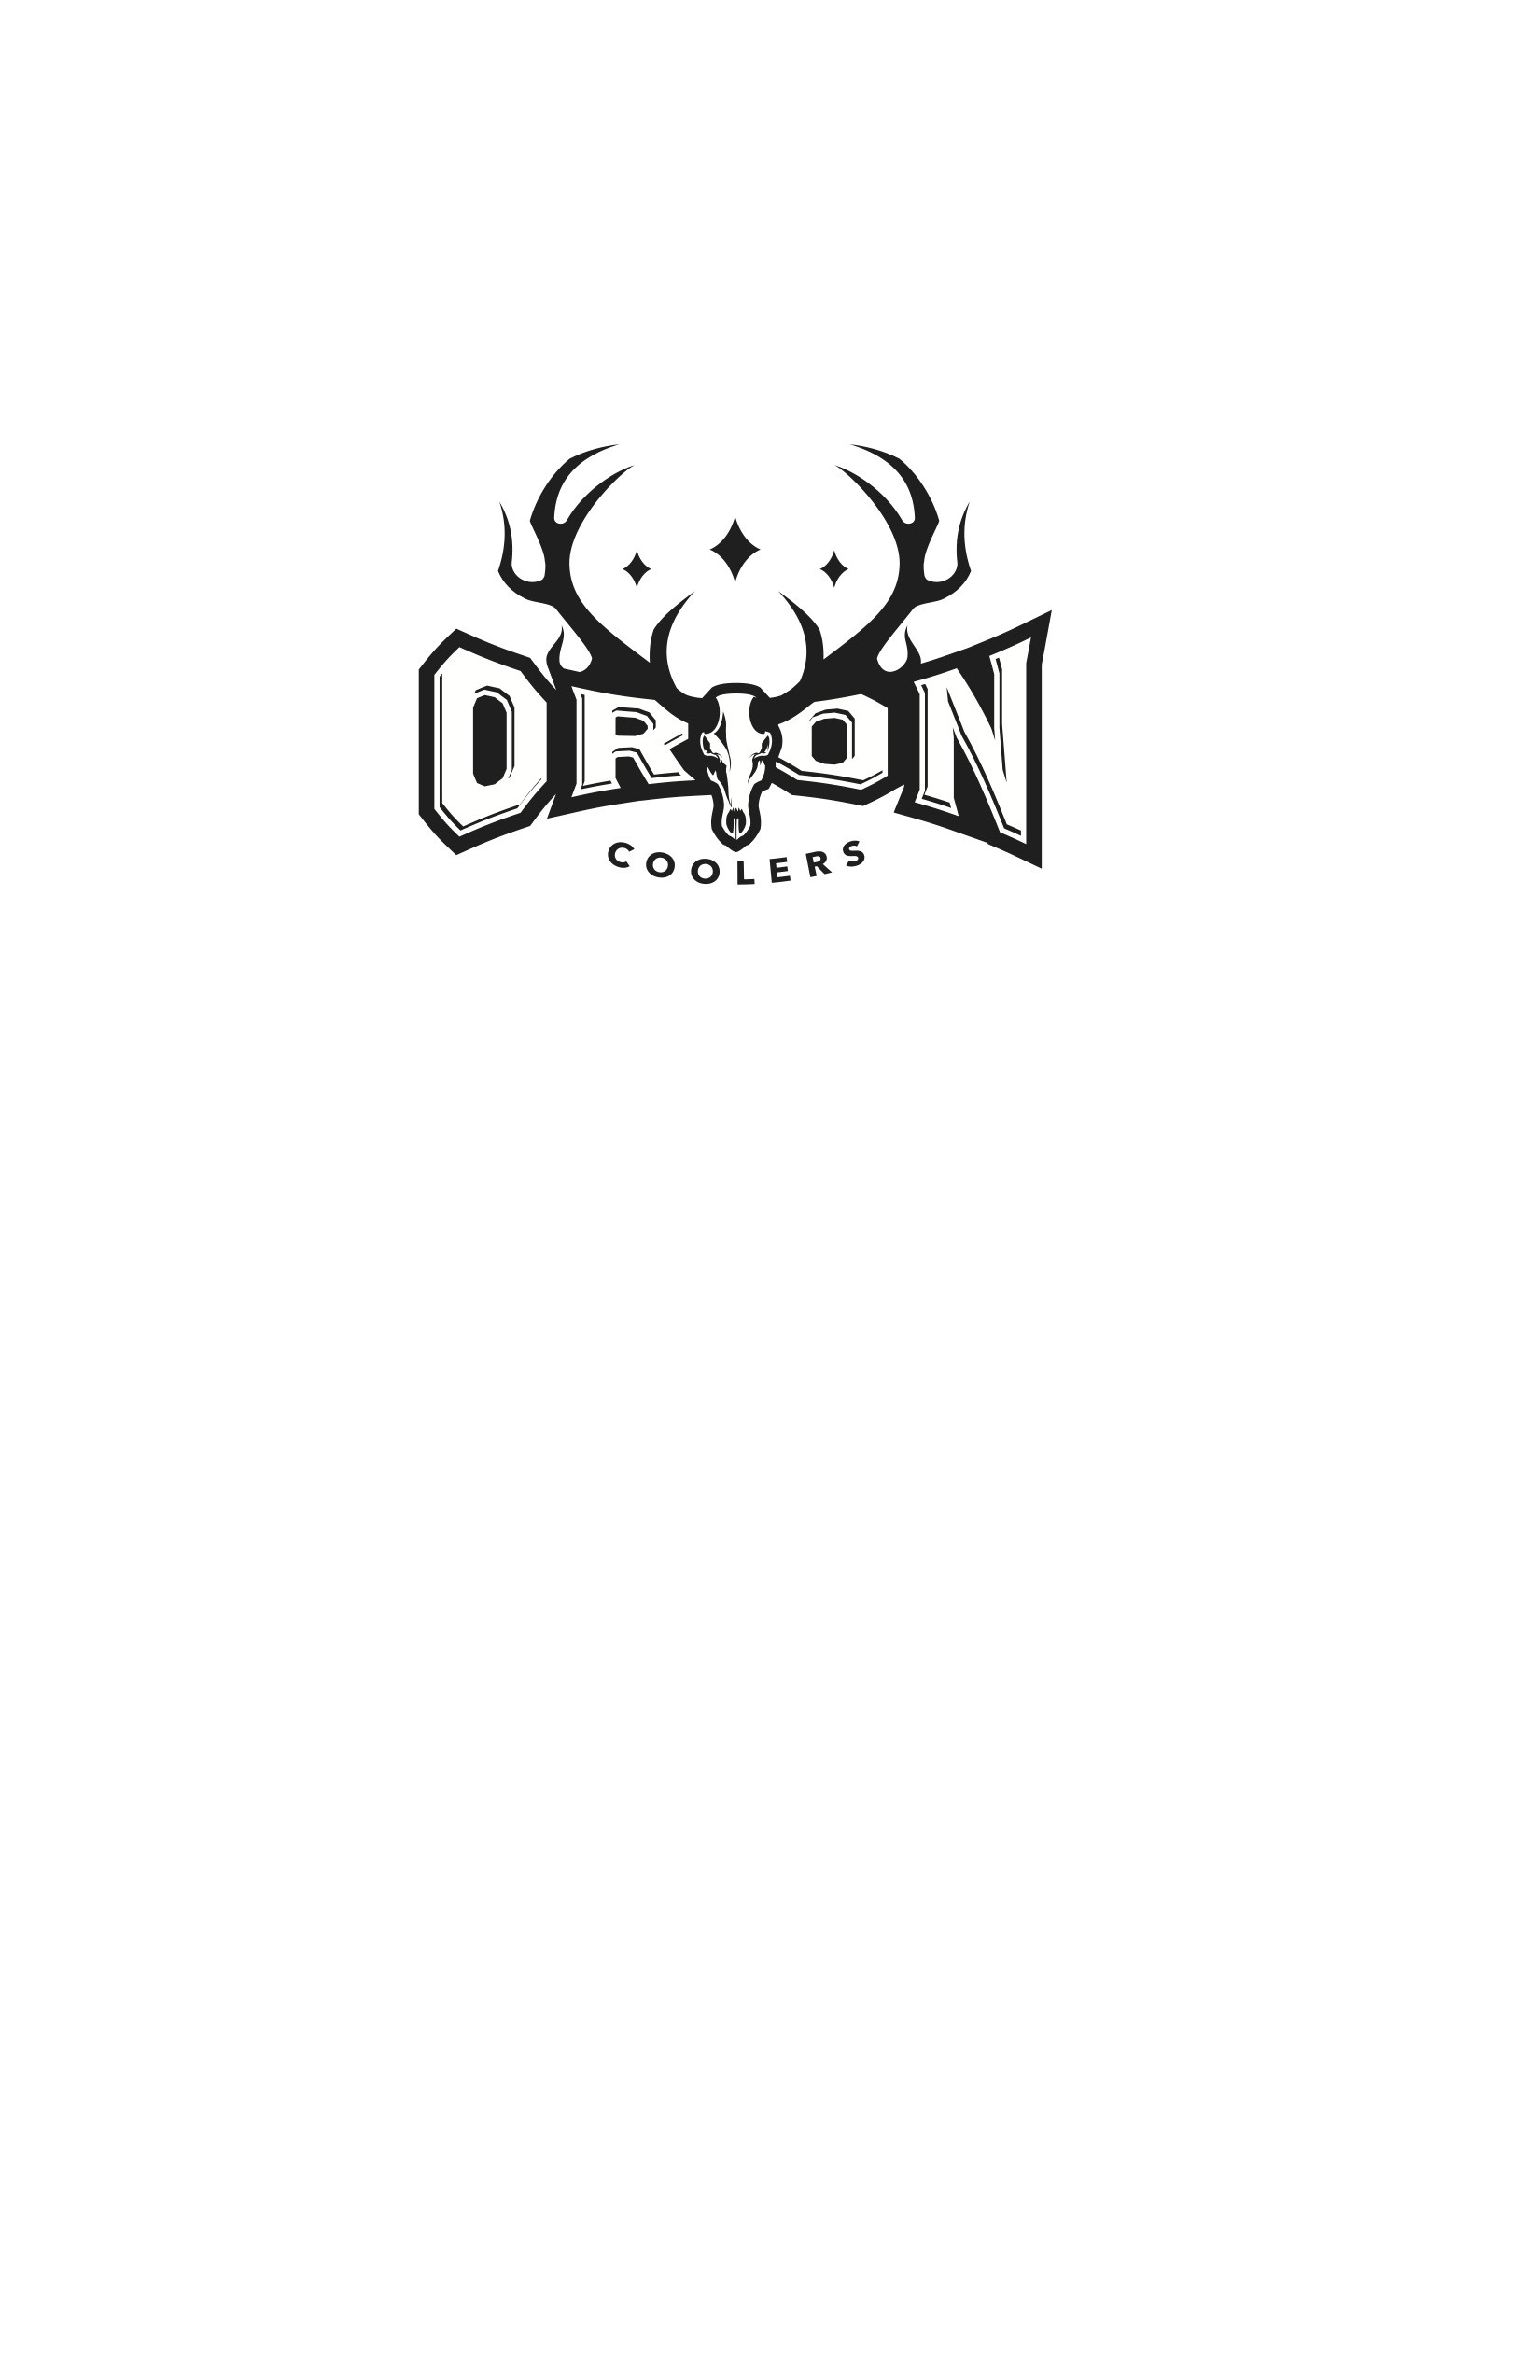 ORION COOLERS Logo 1c